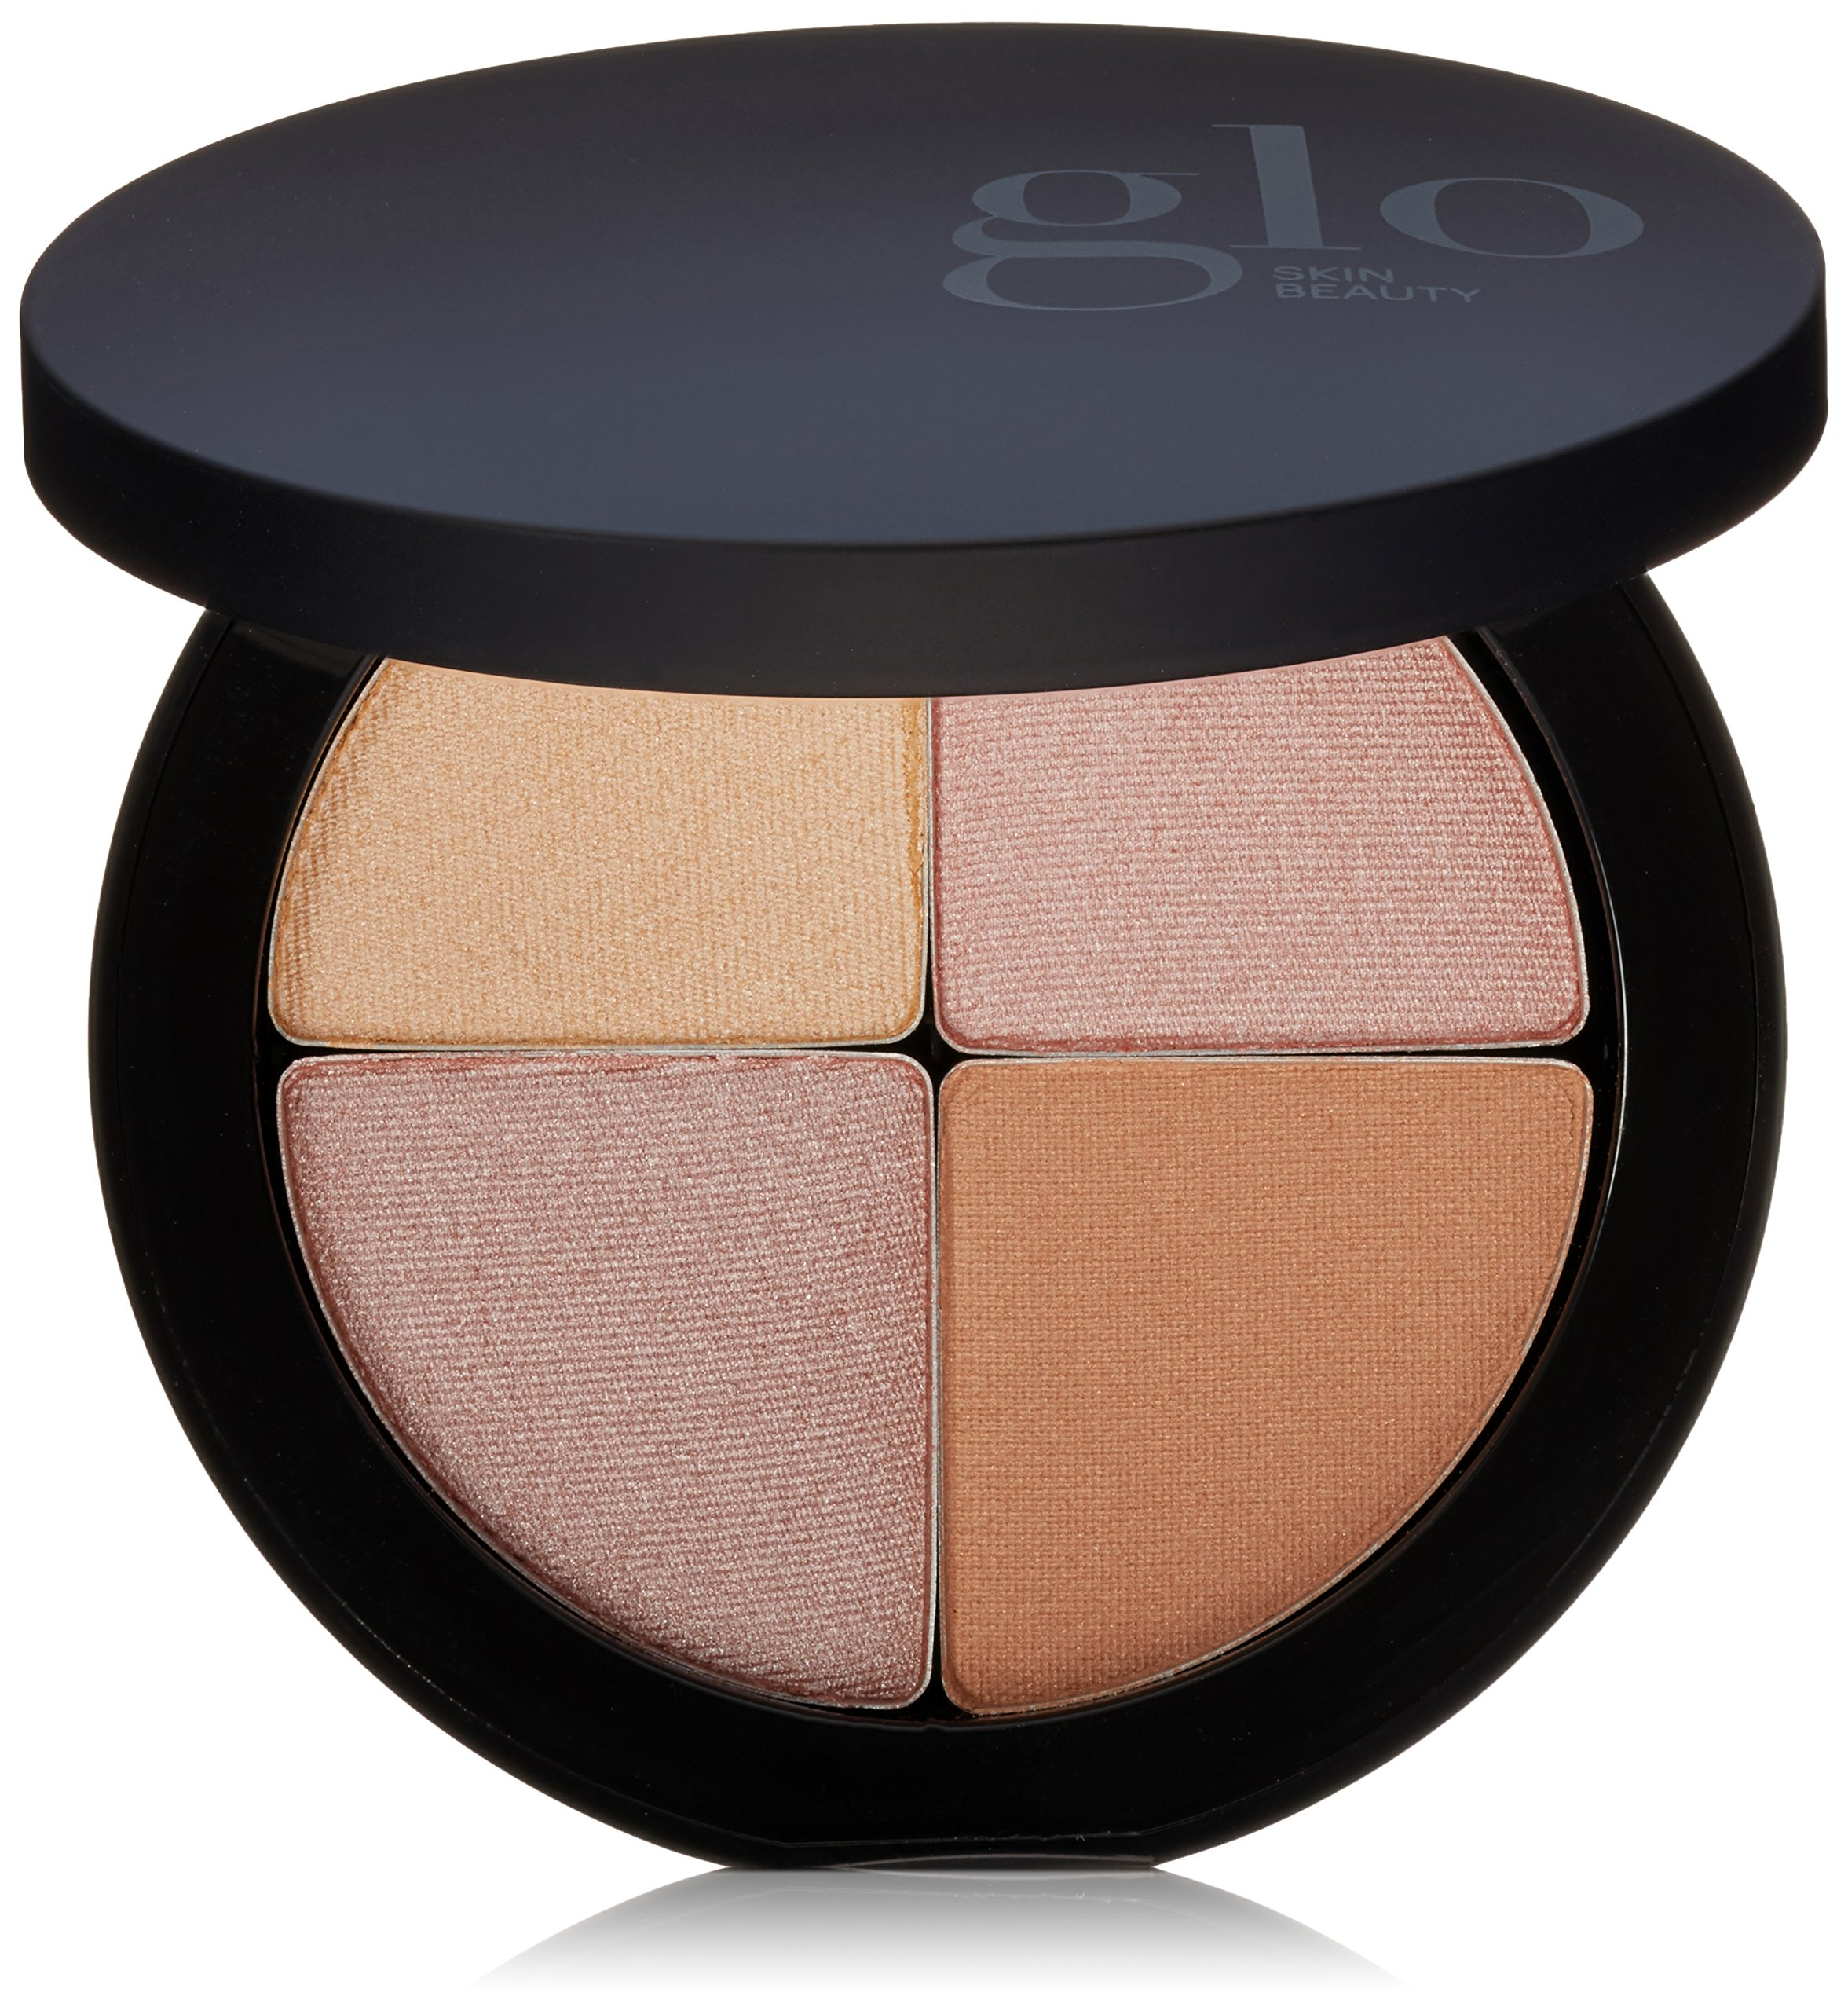 Glo Skin Beauty Shimmer Brick in Luster   Face Highlighter Palette Set in Bronze   4 Colors, 2 Shade Options